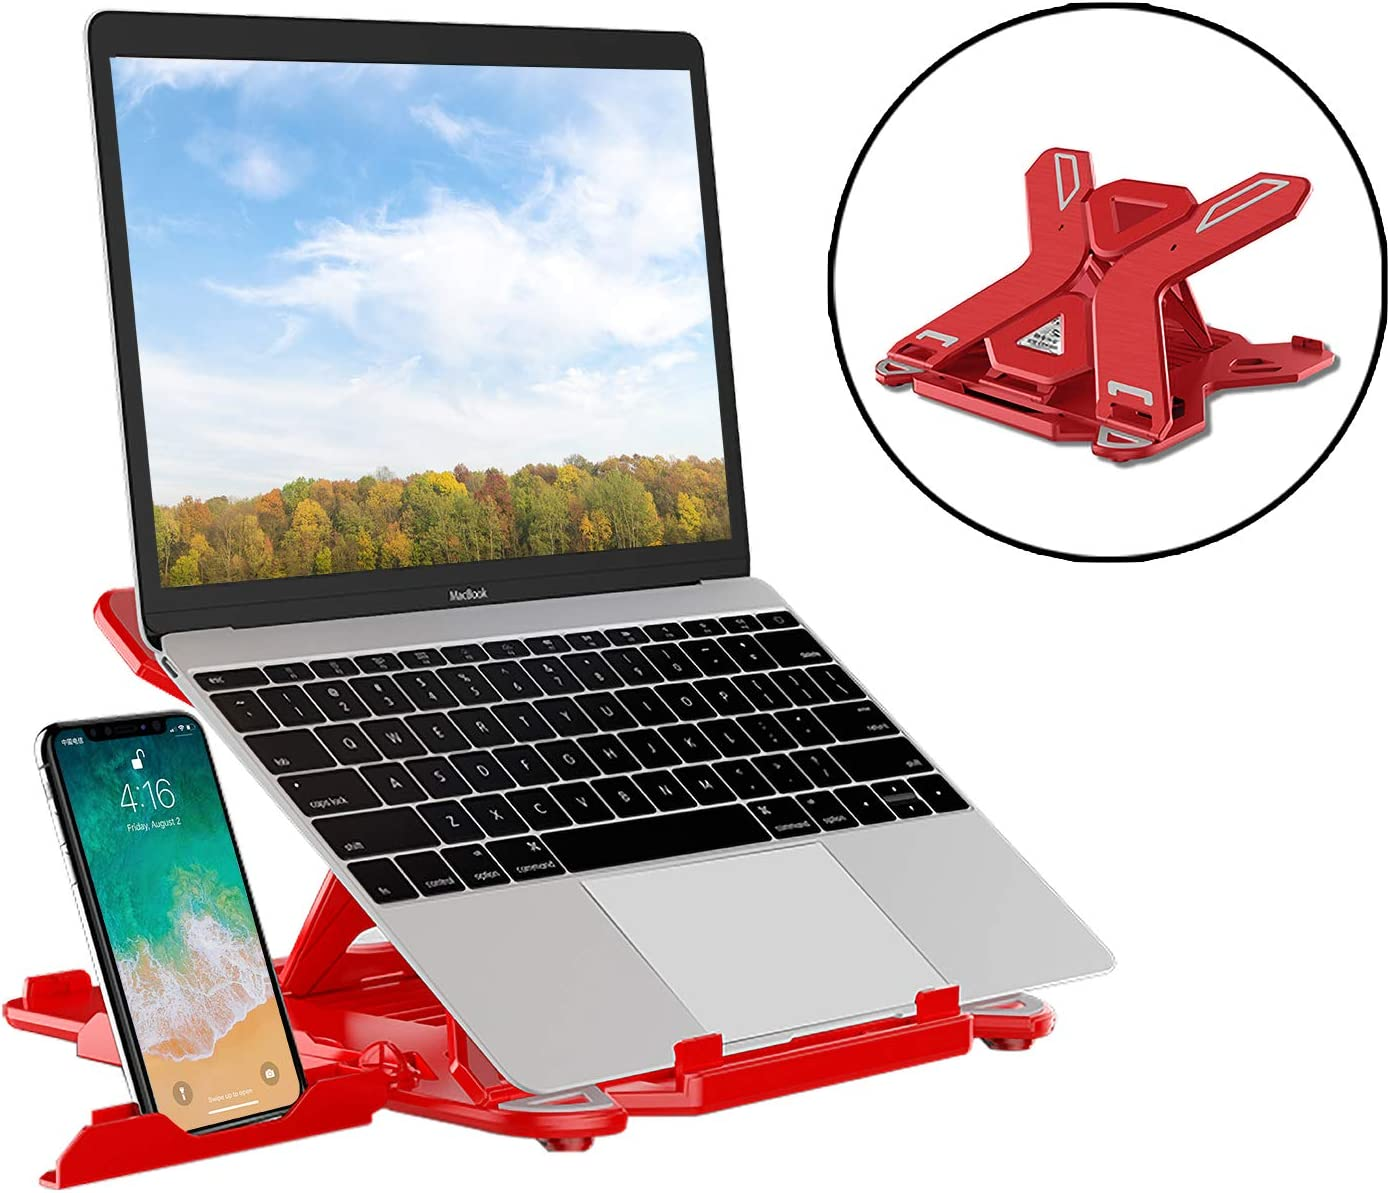 Red SEA or STAR Laptop Stand Adjustable 360/°Swivel Computer Stand with Phone Holder Compatible with iMac//Laptop//Tablet 10-15.6